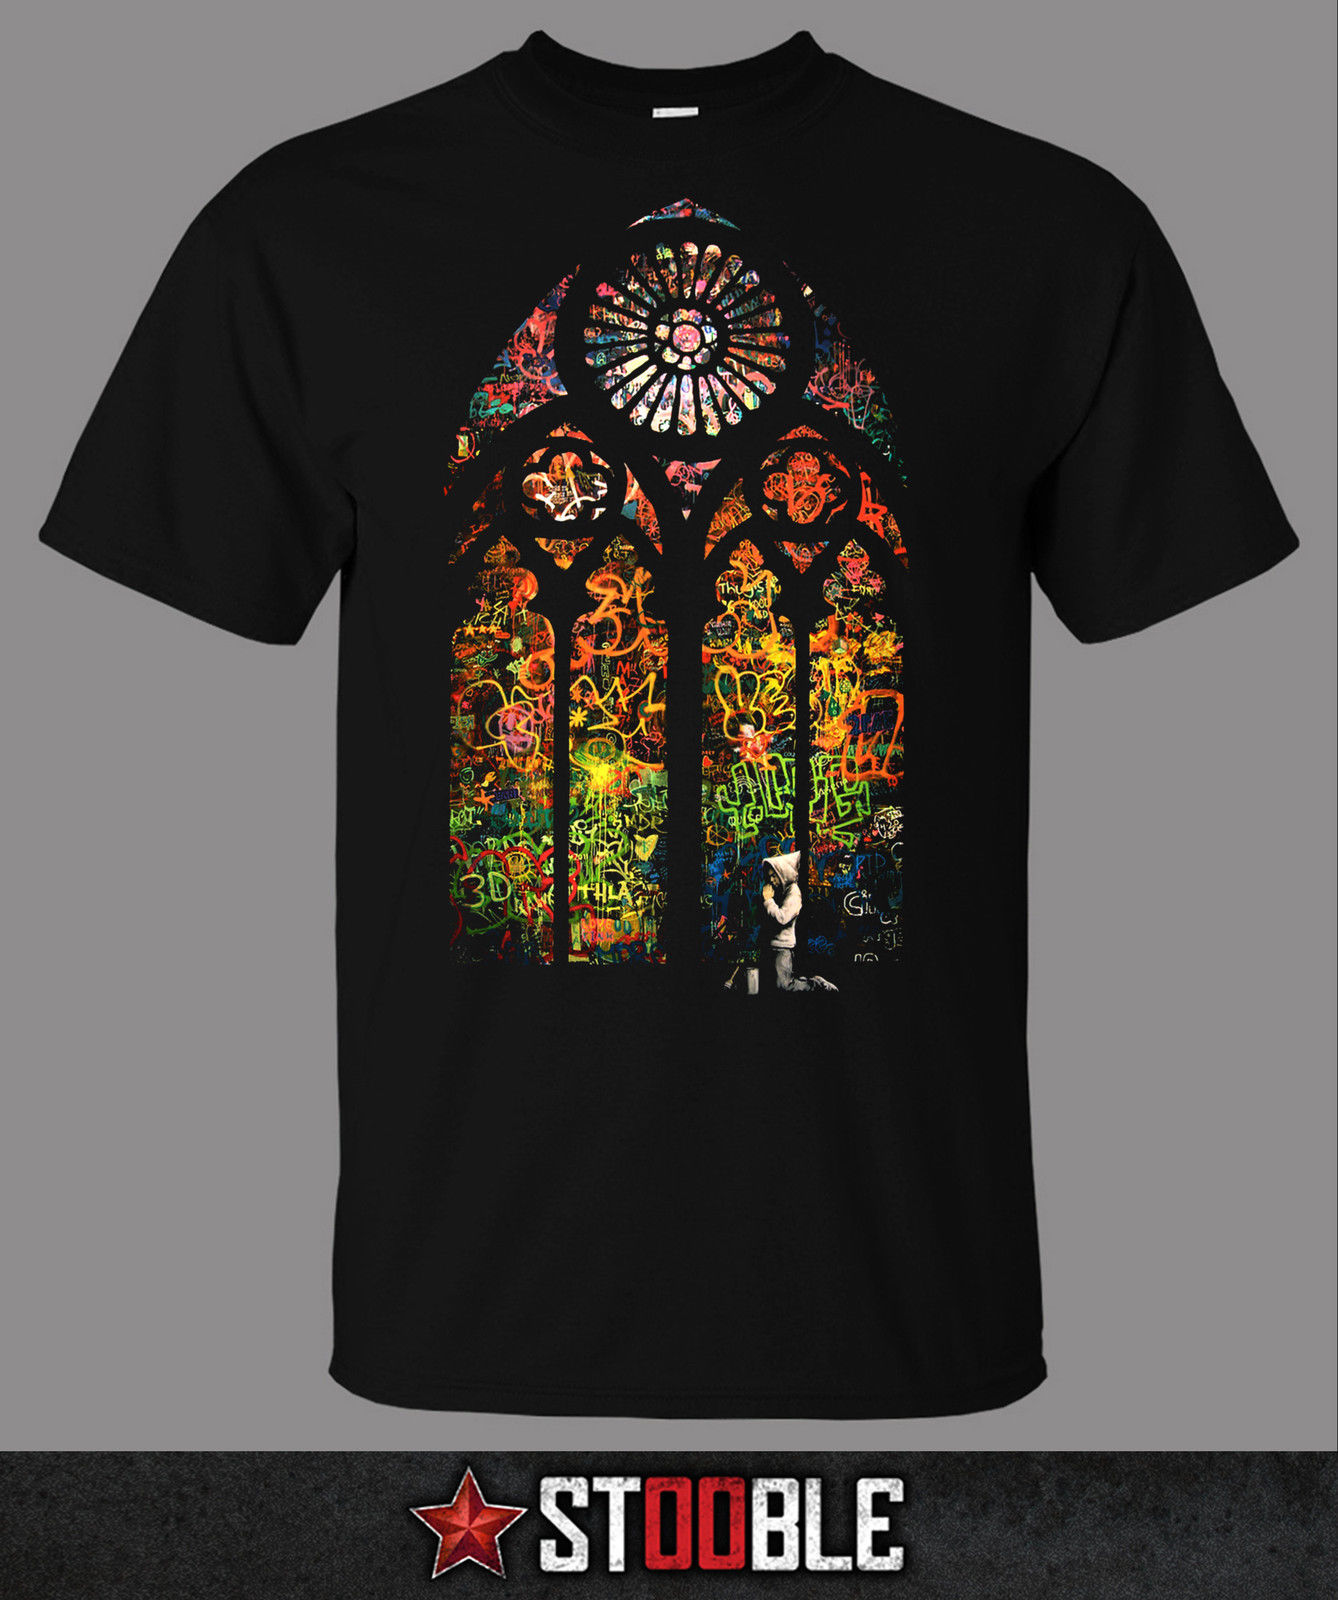 Stained Glass Banksy T-Shirt - New T Shirts Funny Tops Tee Unisex Fashion Summer Paried Tshirts Black Style